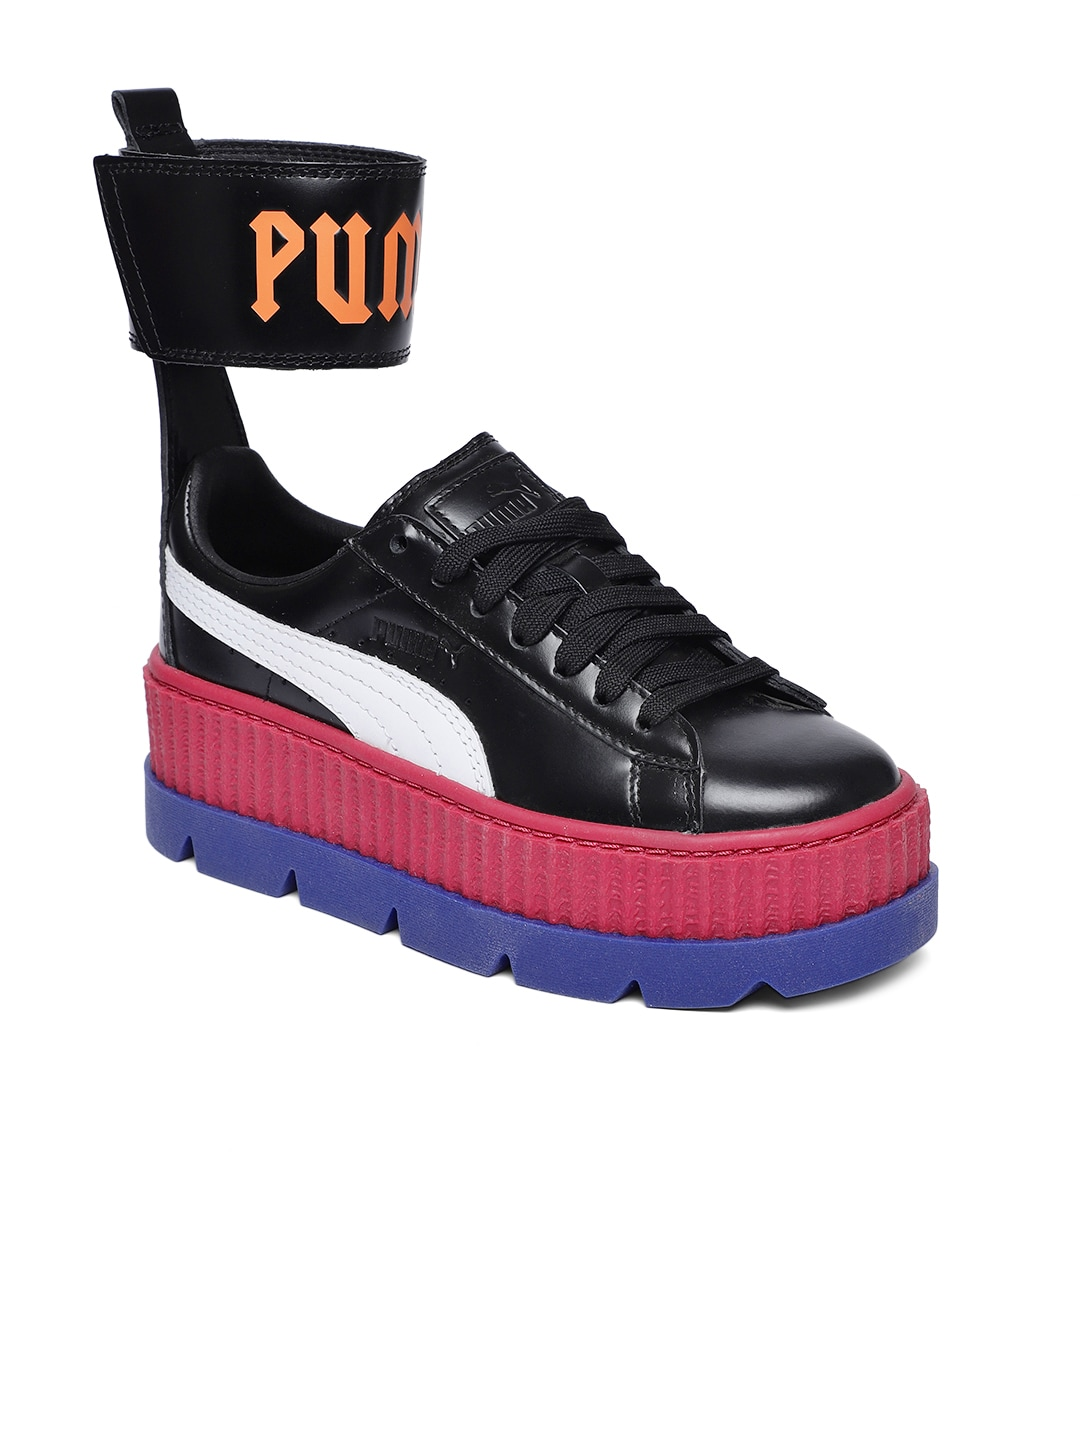 Puma High Top Shoes - Buy Puma High Top Shoes online in India 3f03cc79d